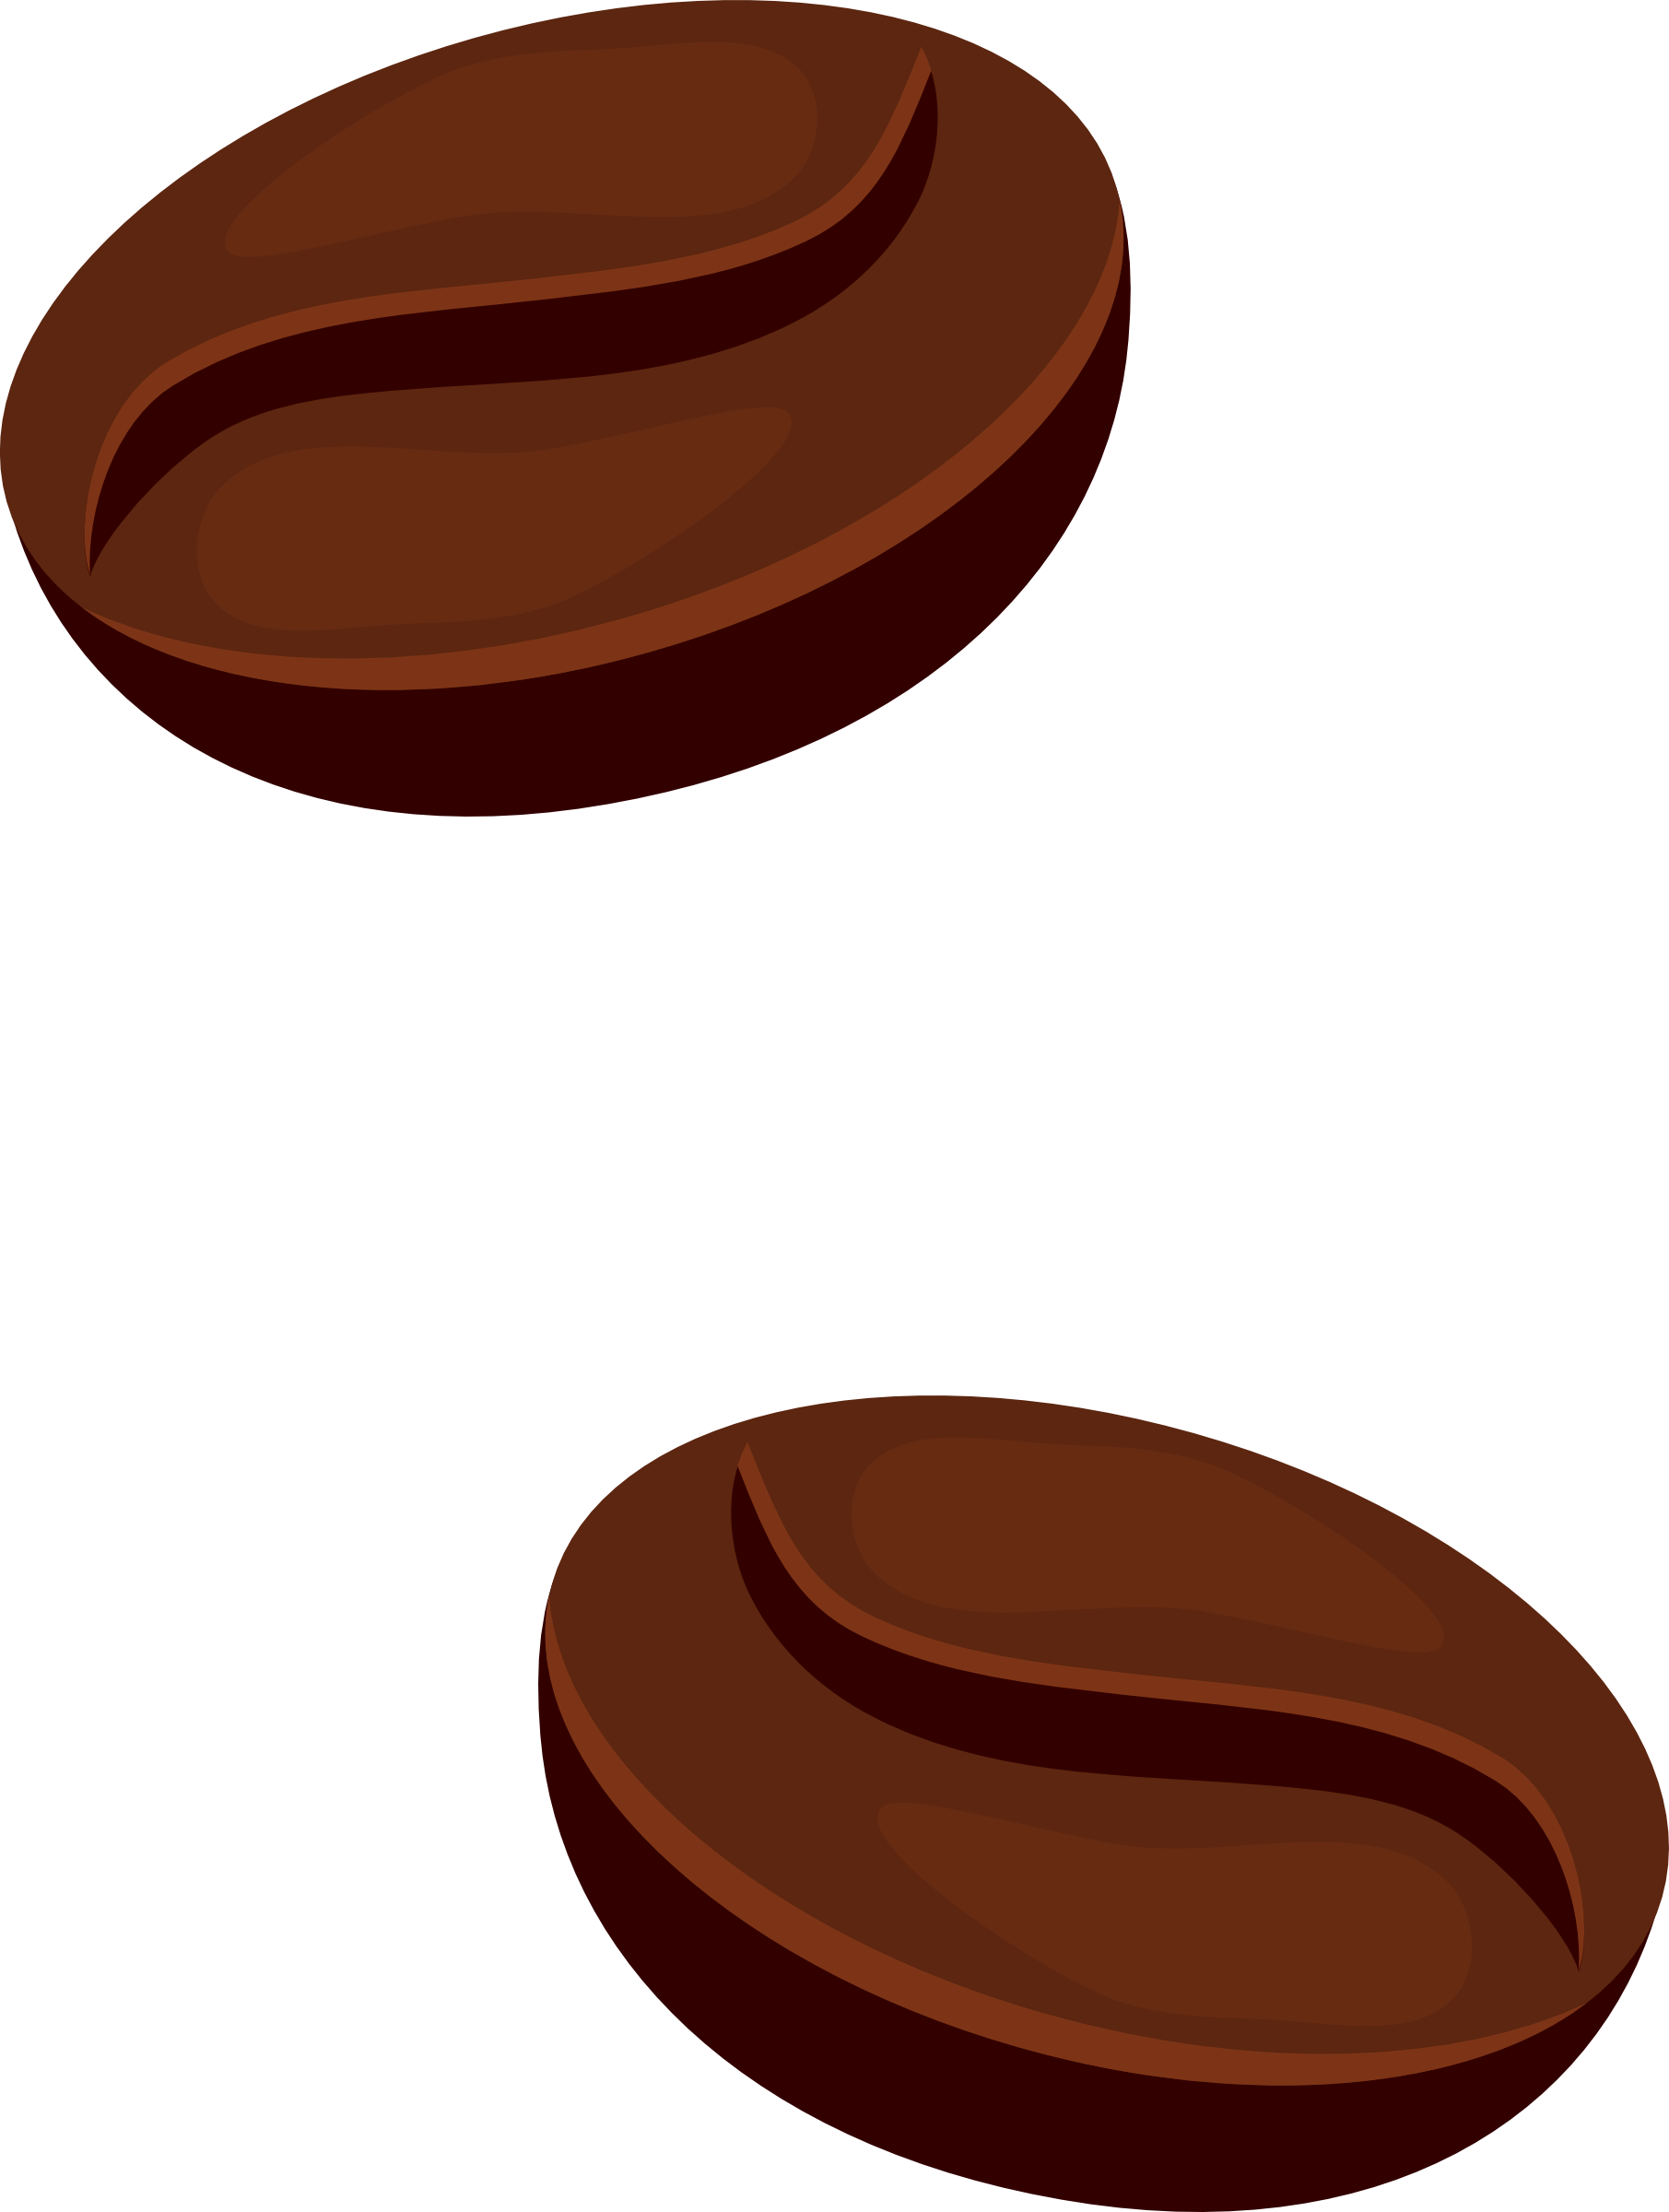 Clipart Of Coffee Bean